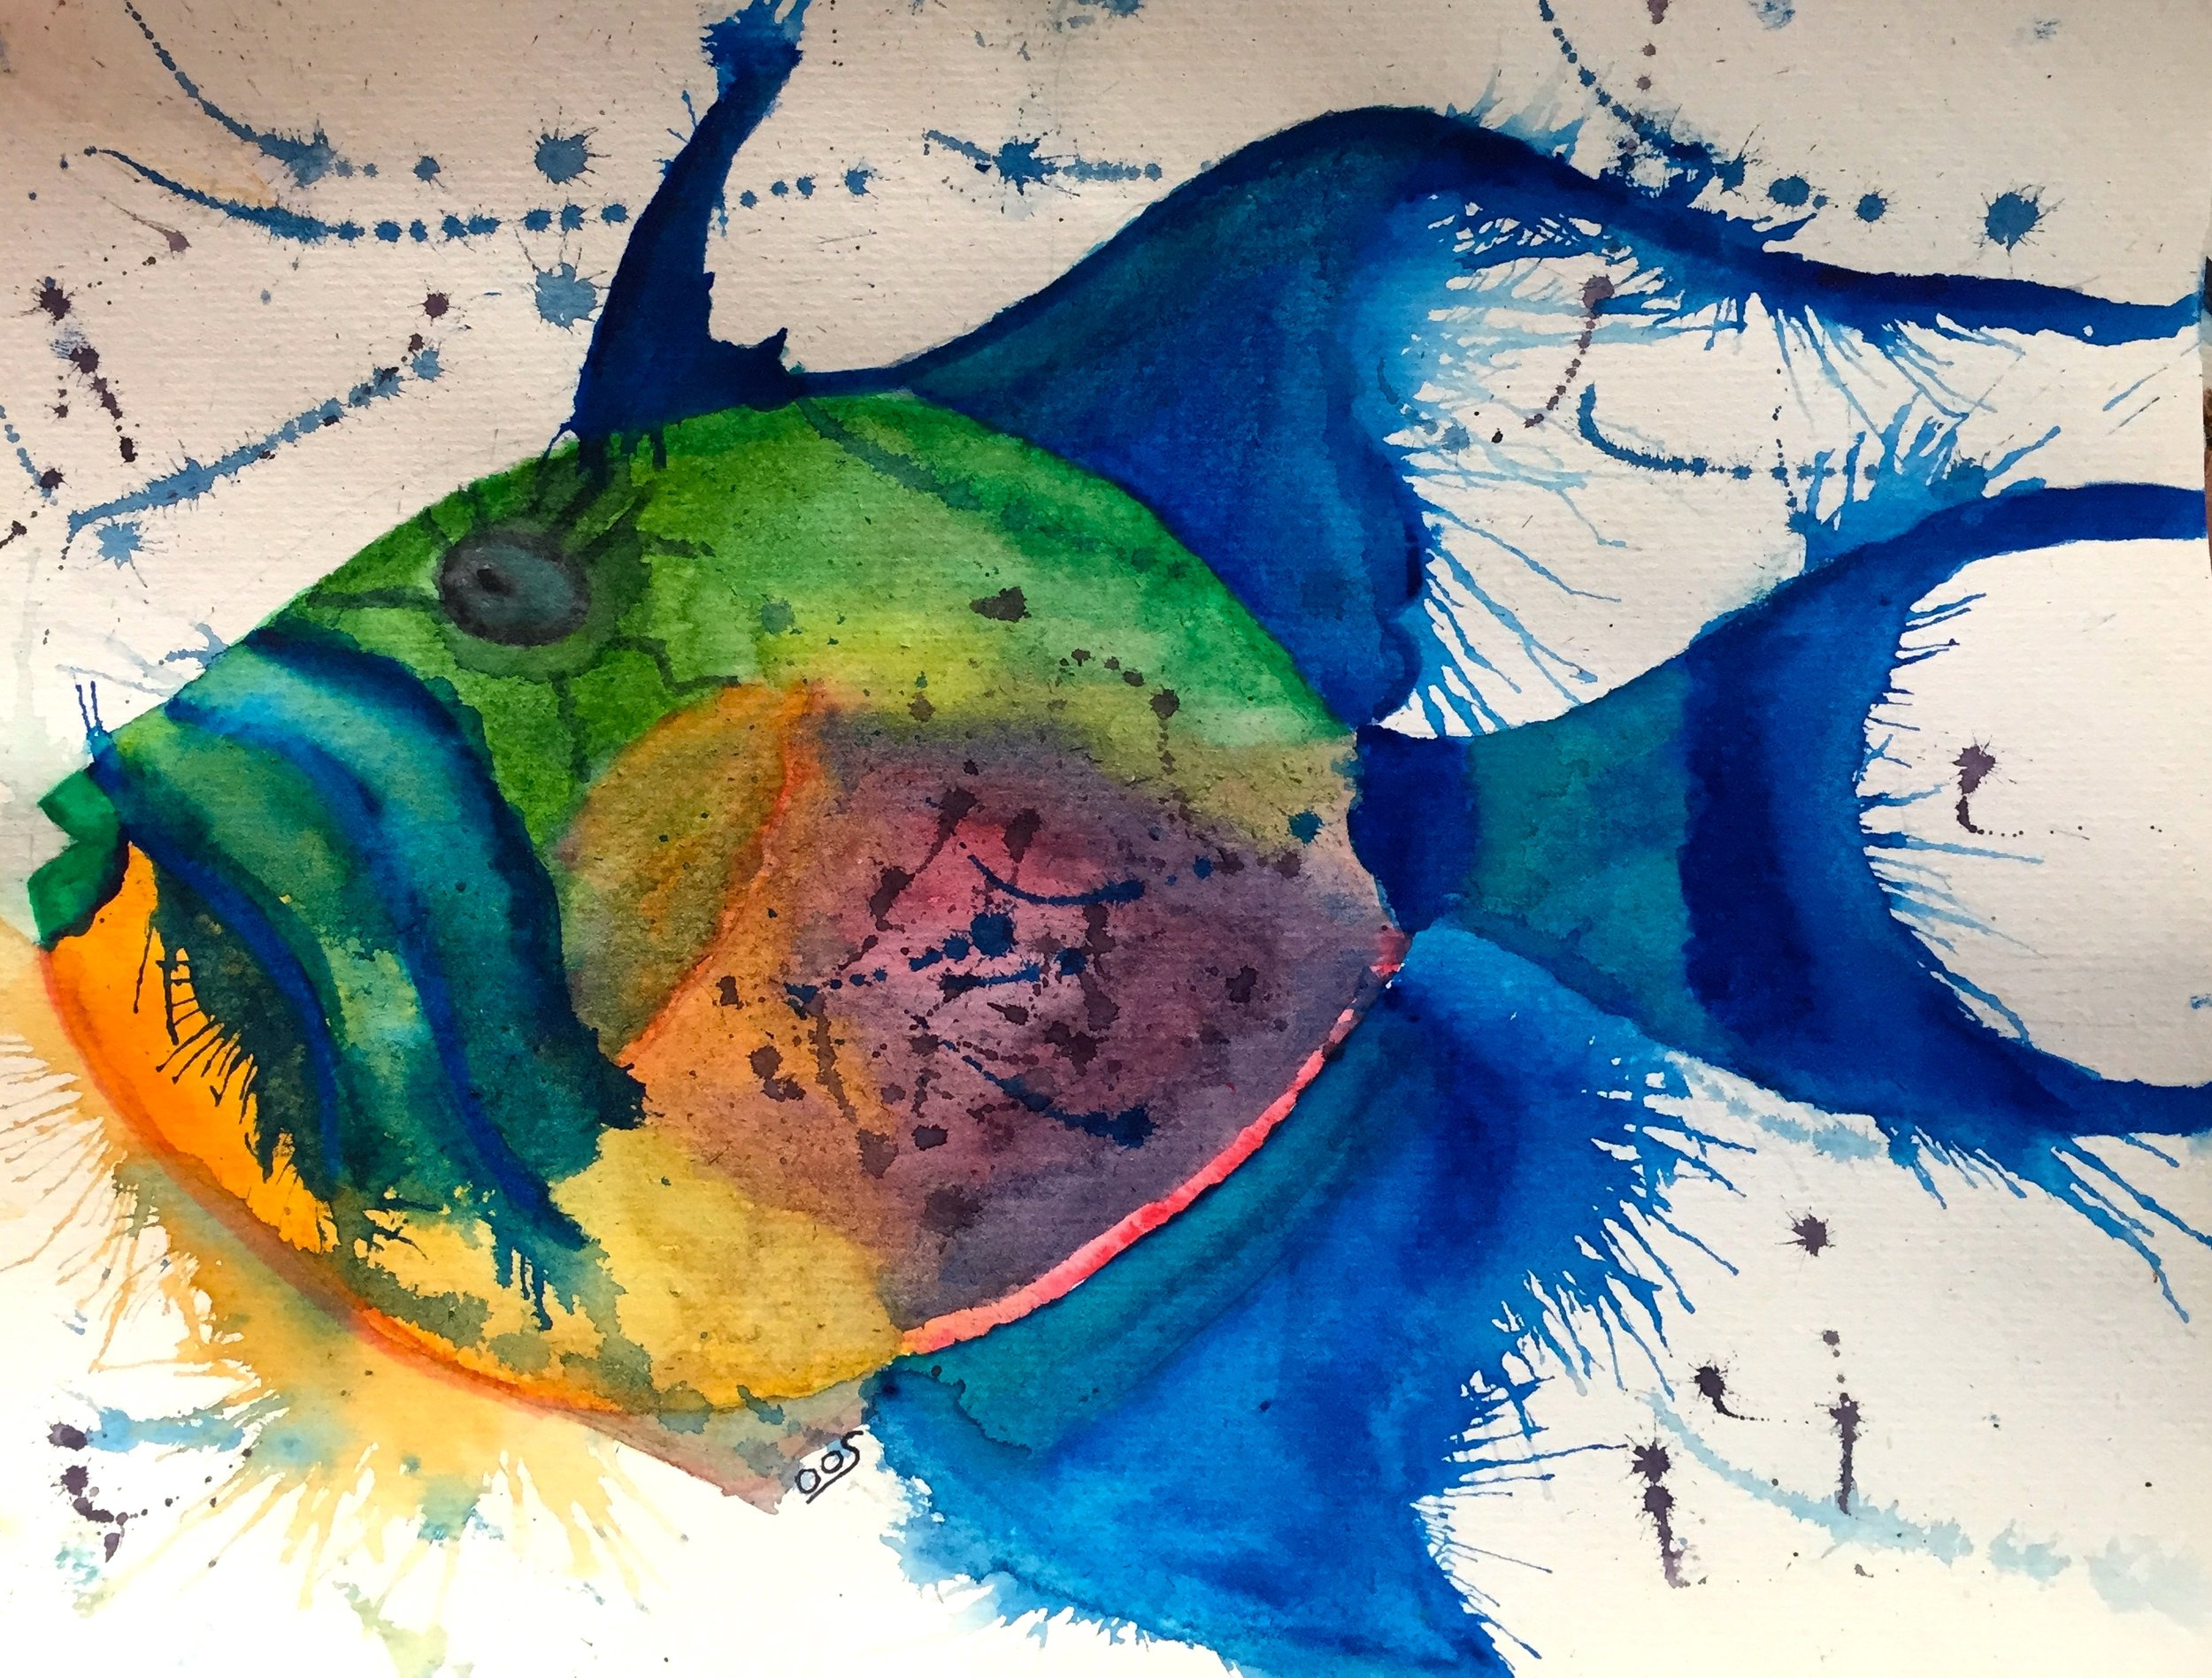 Queen Triggerfish ( Balistes vetula ) Owen O'Shea Watercolour